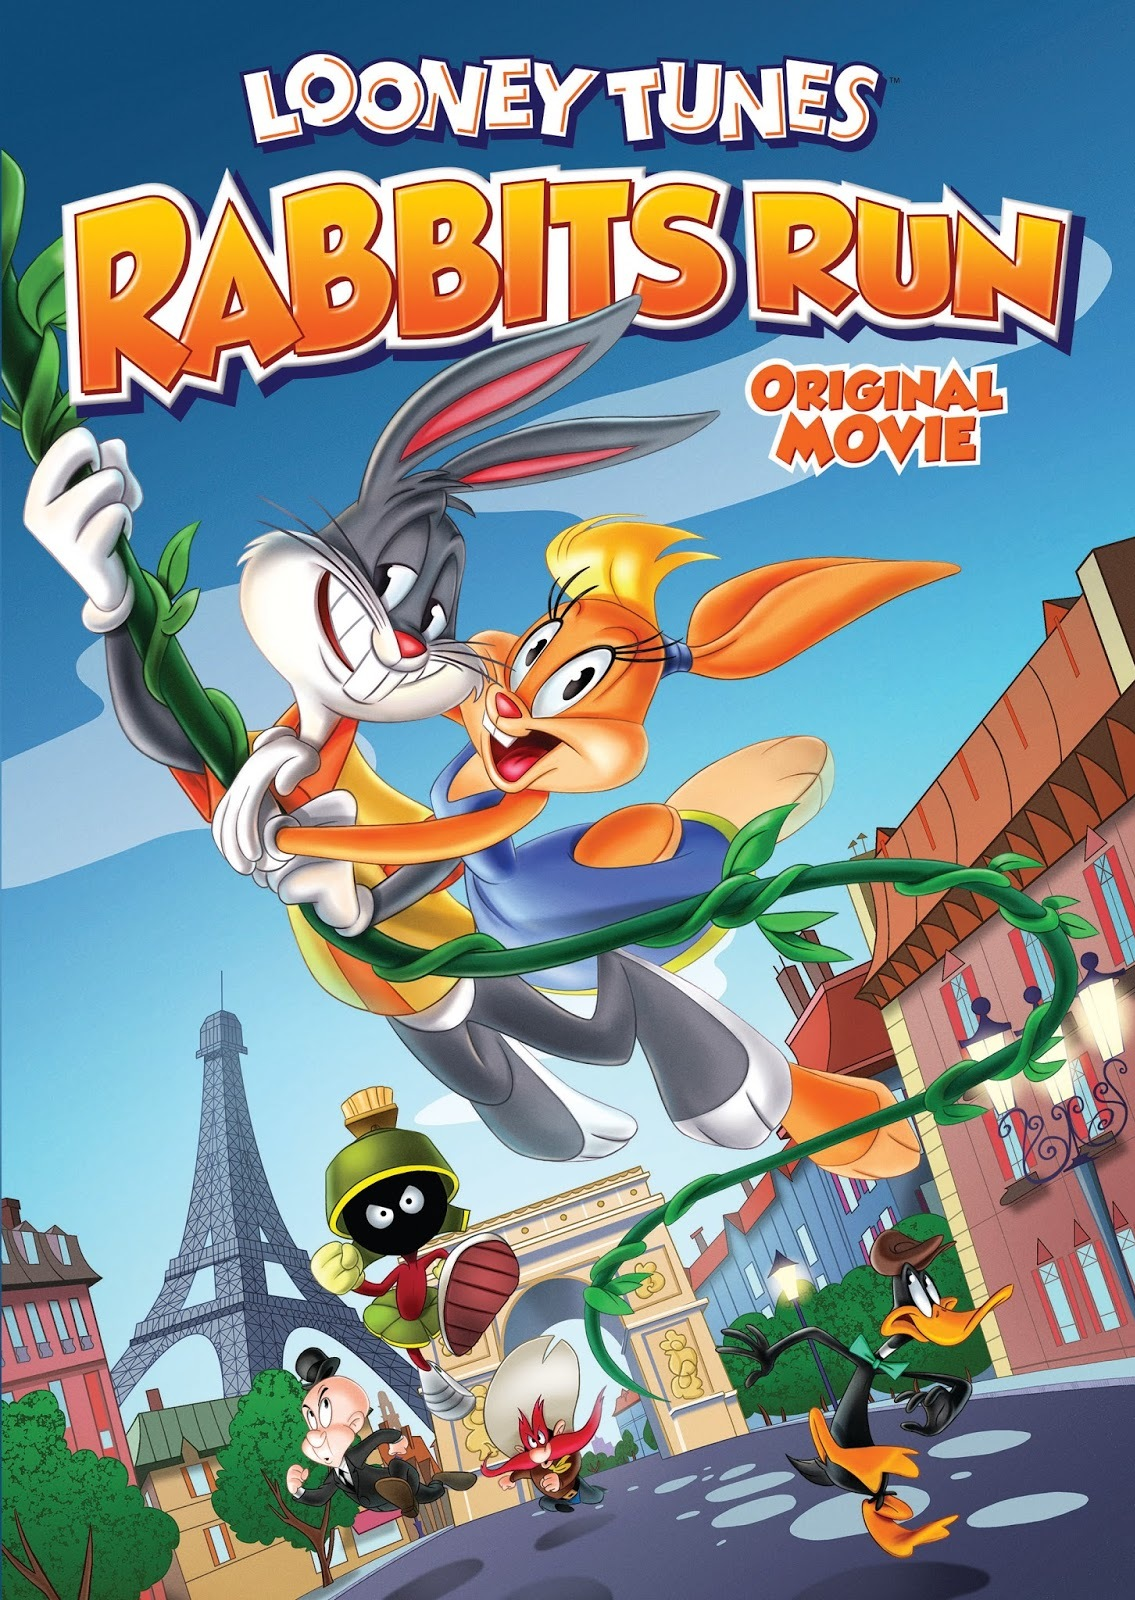 https://static.tvtropes.org/pmwiki/pub/images/looney_tunes_rabbits_run.jpg